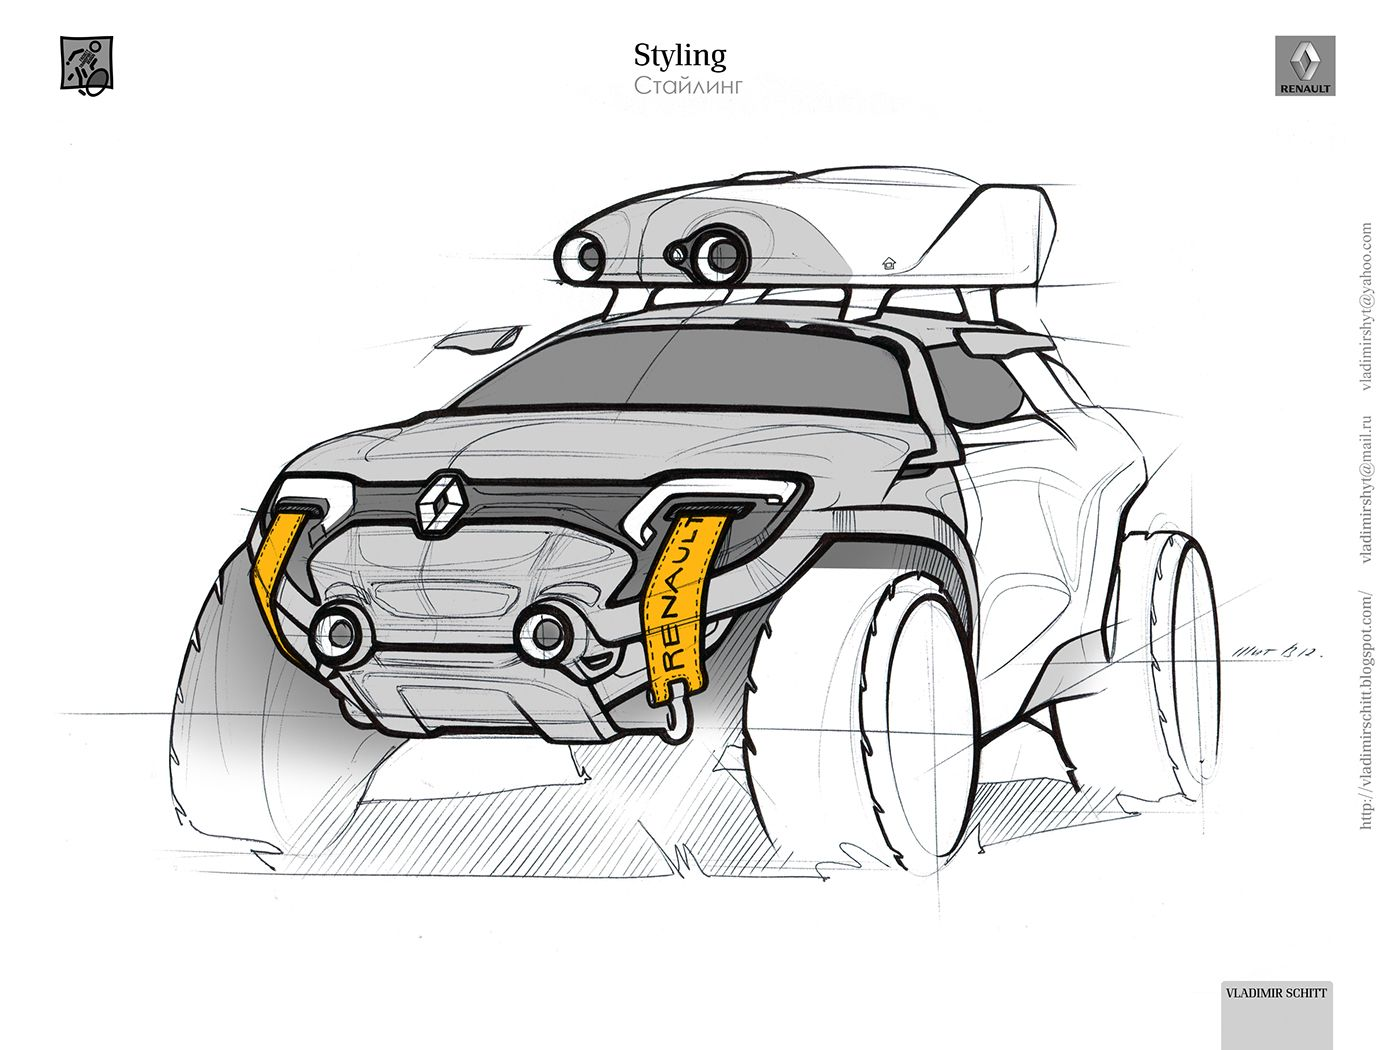 Pin by рустам on Автомобили | Pinterest | Sketches, Car sketch and Cars